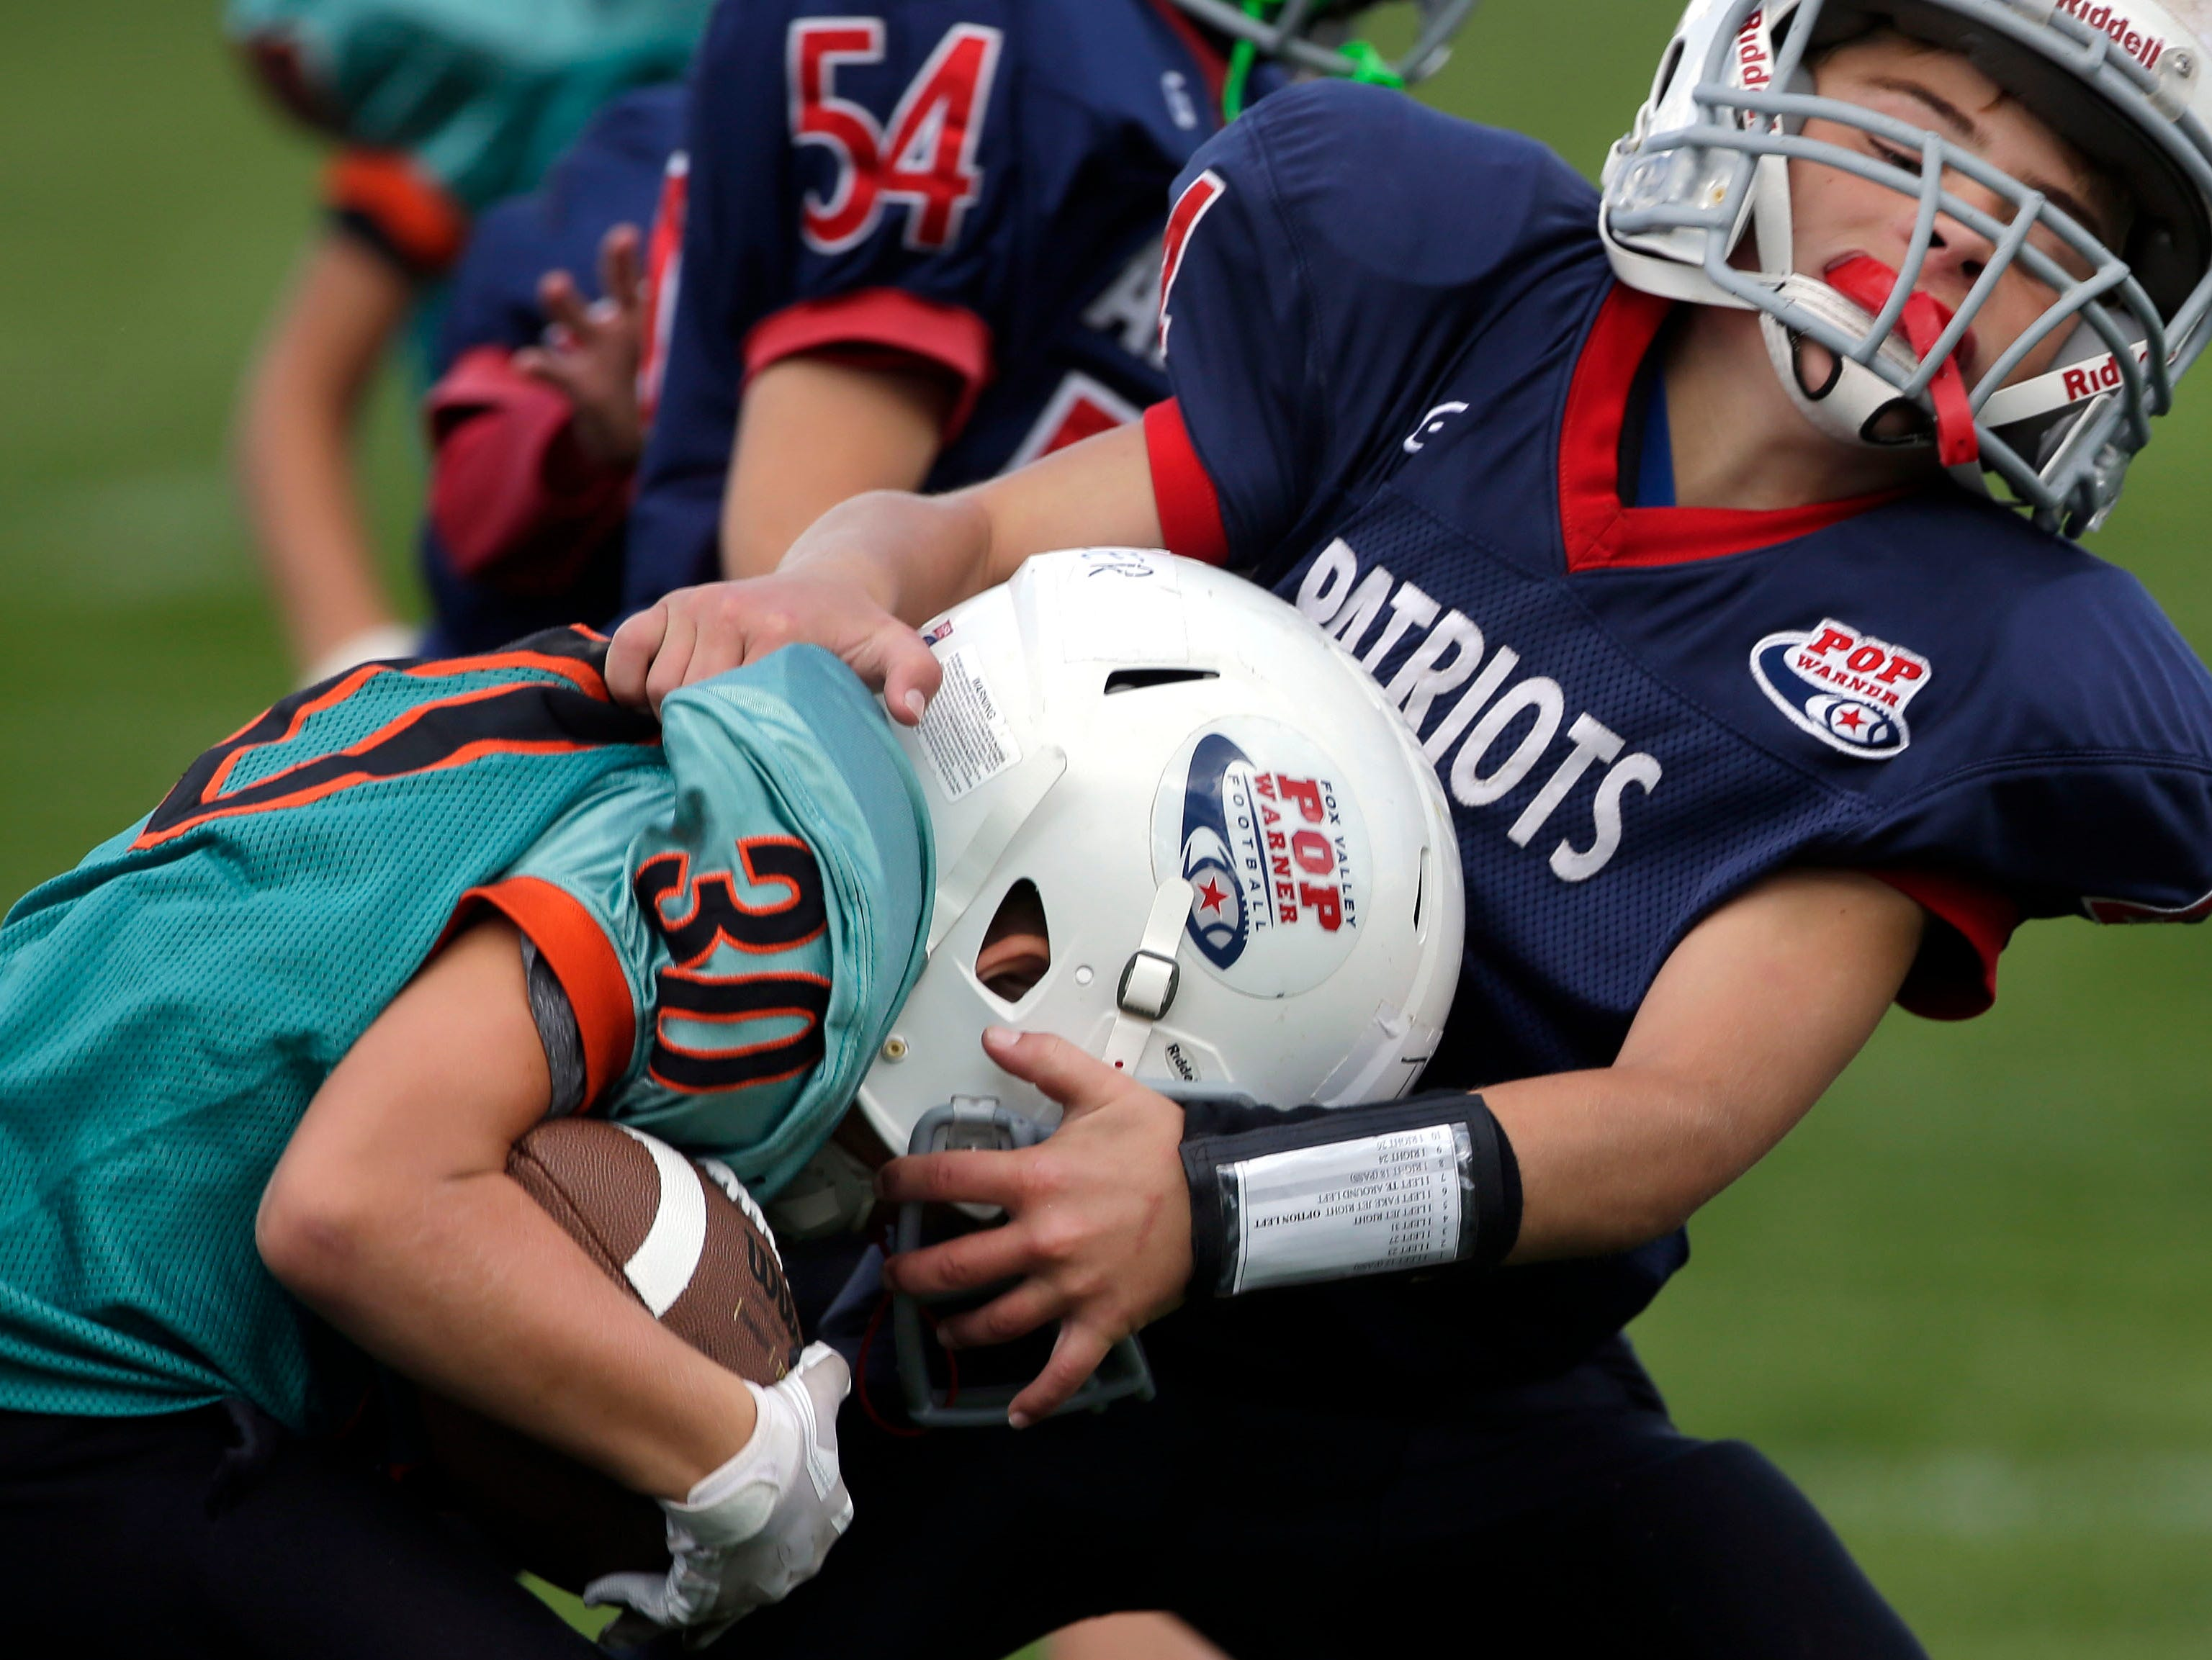 Tyler Clark of the Rockets is tackled by AJ Pheifer of the Patriots as Fox Valley Pop Warner Football opens the season Saturday, September 8, 2018, at Plamann Park in Grand Chute, Wis.Ron Page/USA TODAY NETWORK-Wisconsin